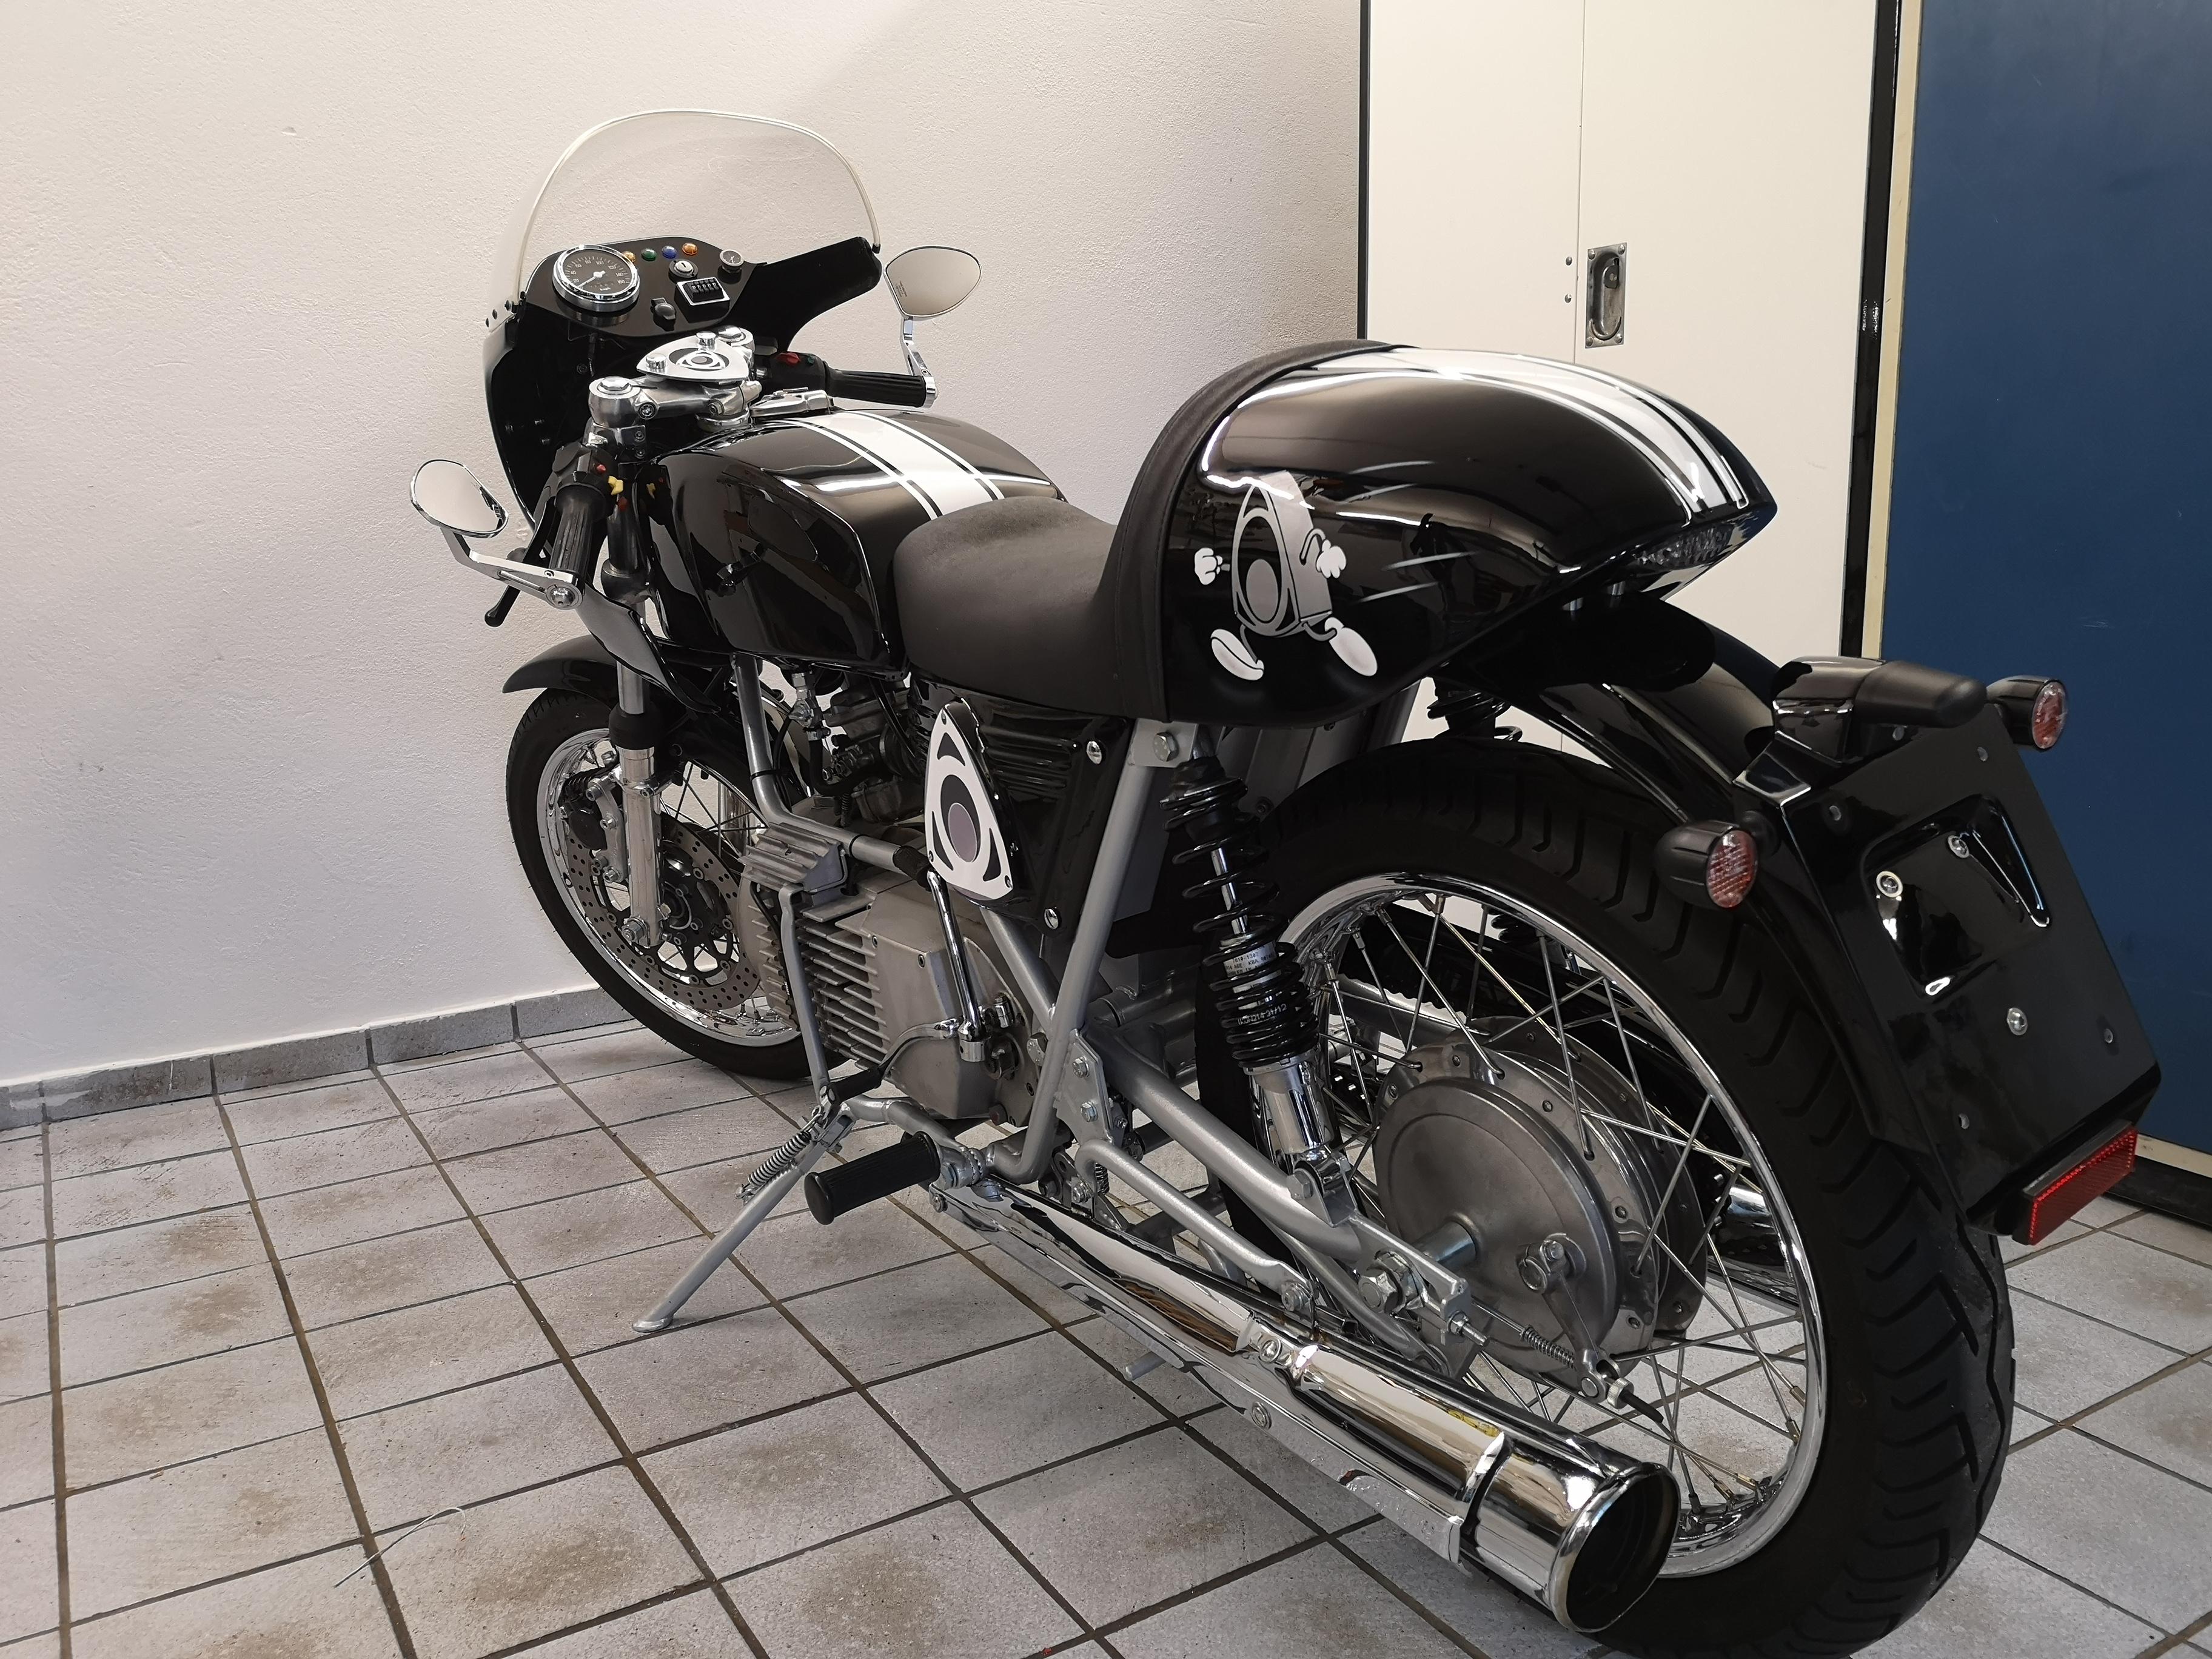 HERKULES W 2000 CAFE RACER